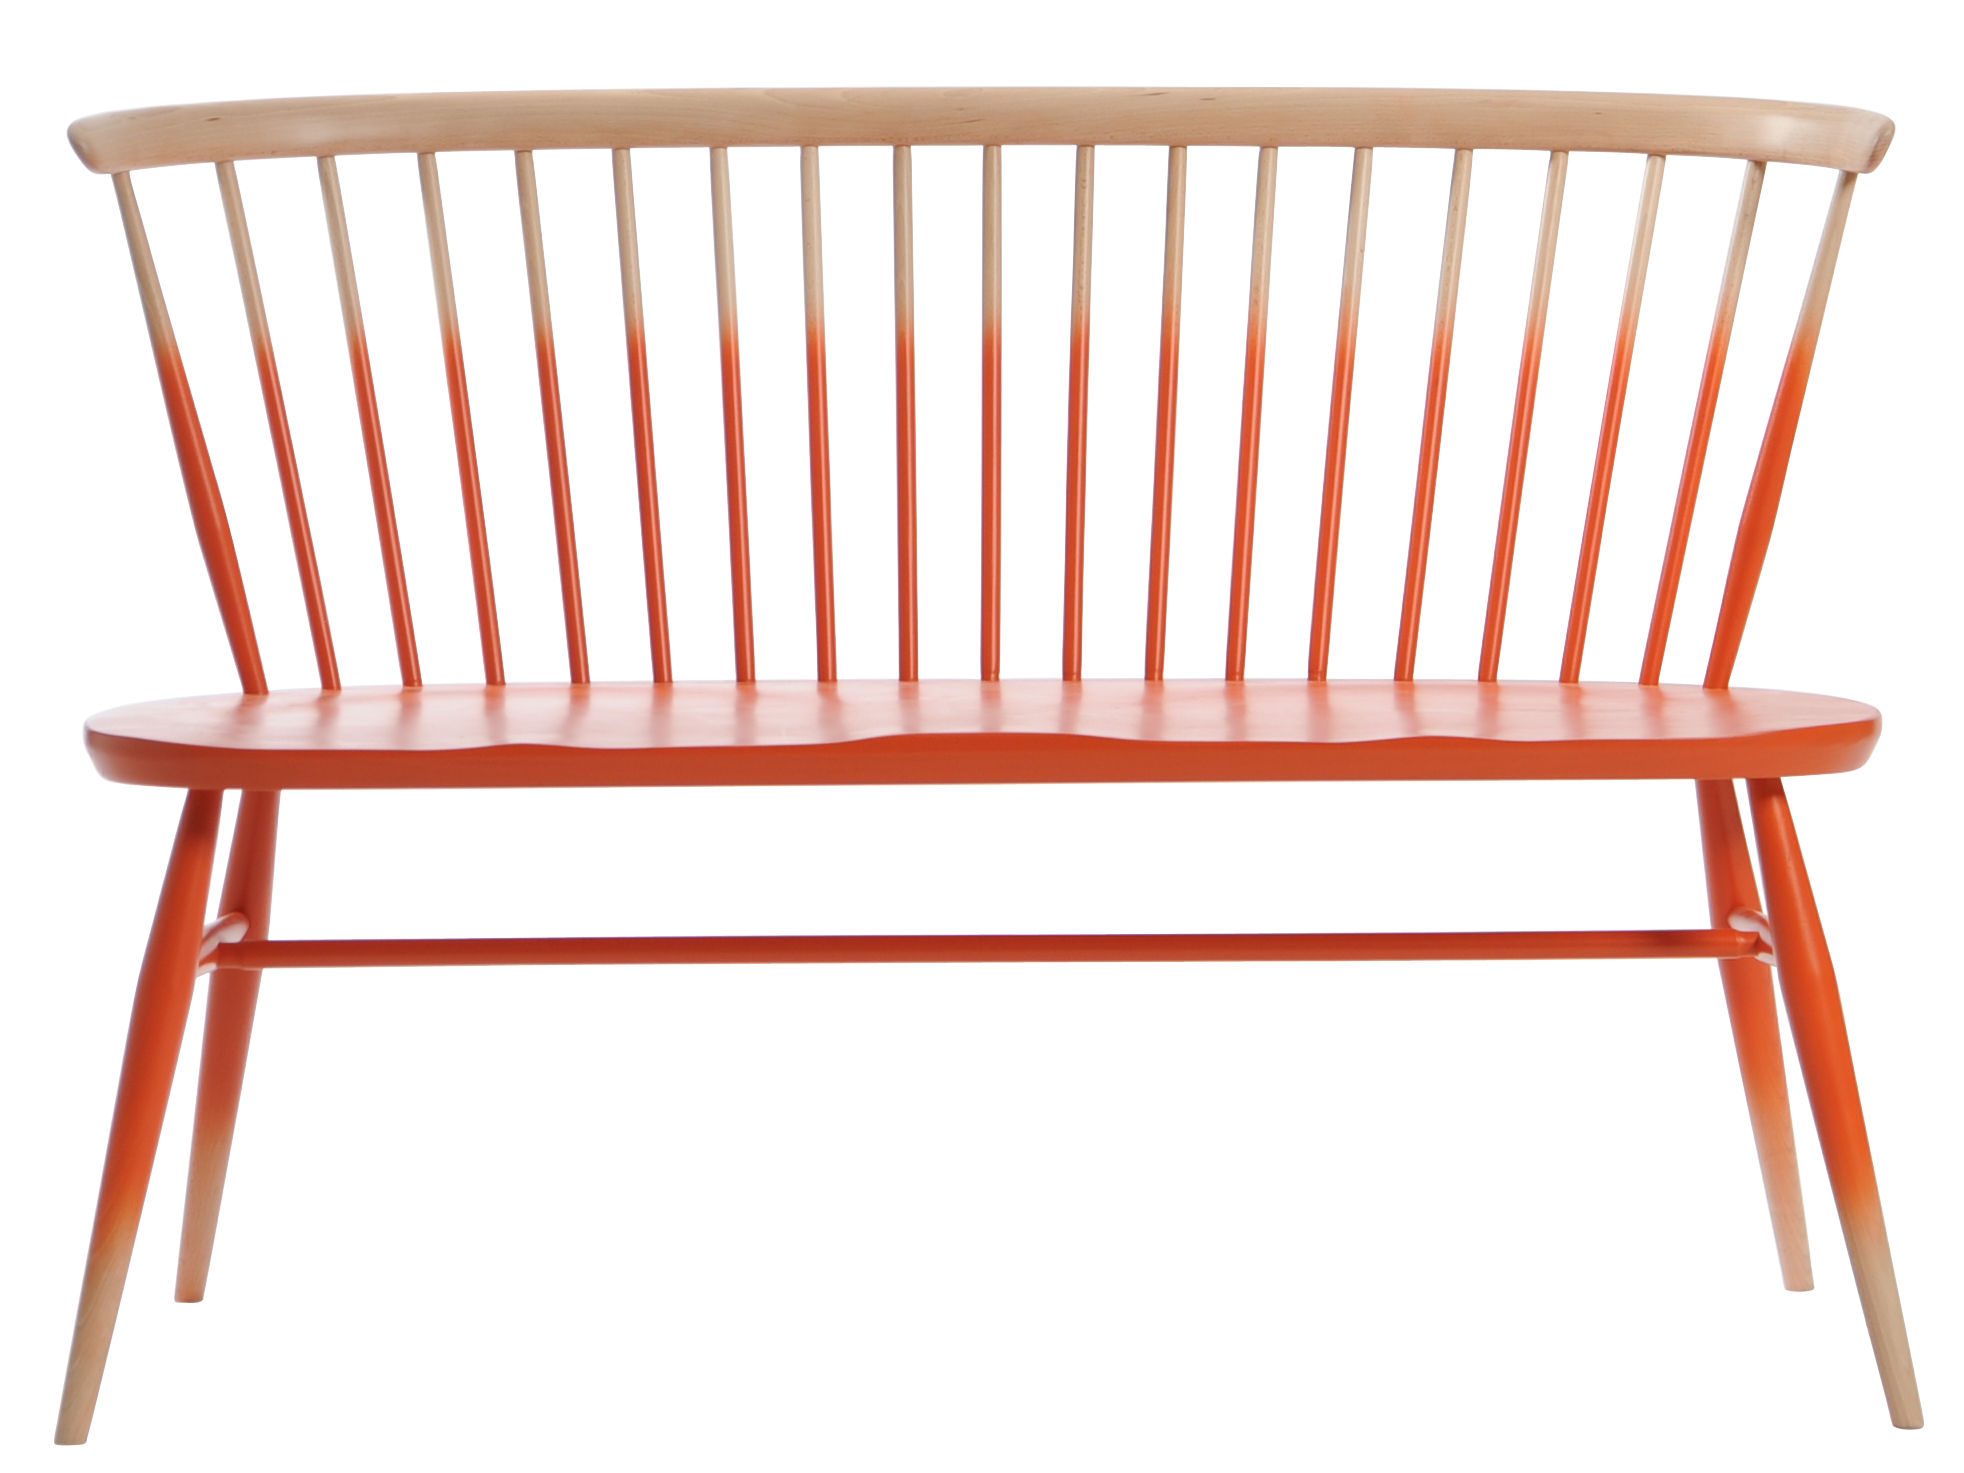 Furniture - Benches - Love Seat Bench with backrest - Reissue 1955 by Ercol - Mandarin gradation - Natural beechwood, Solid elm